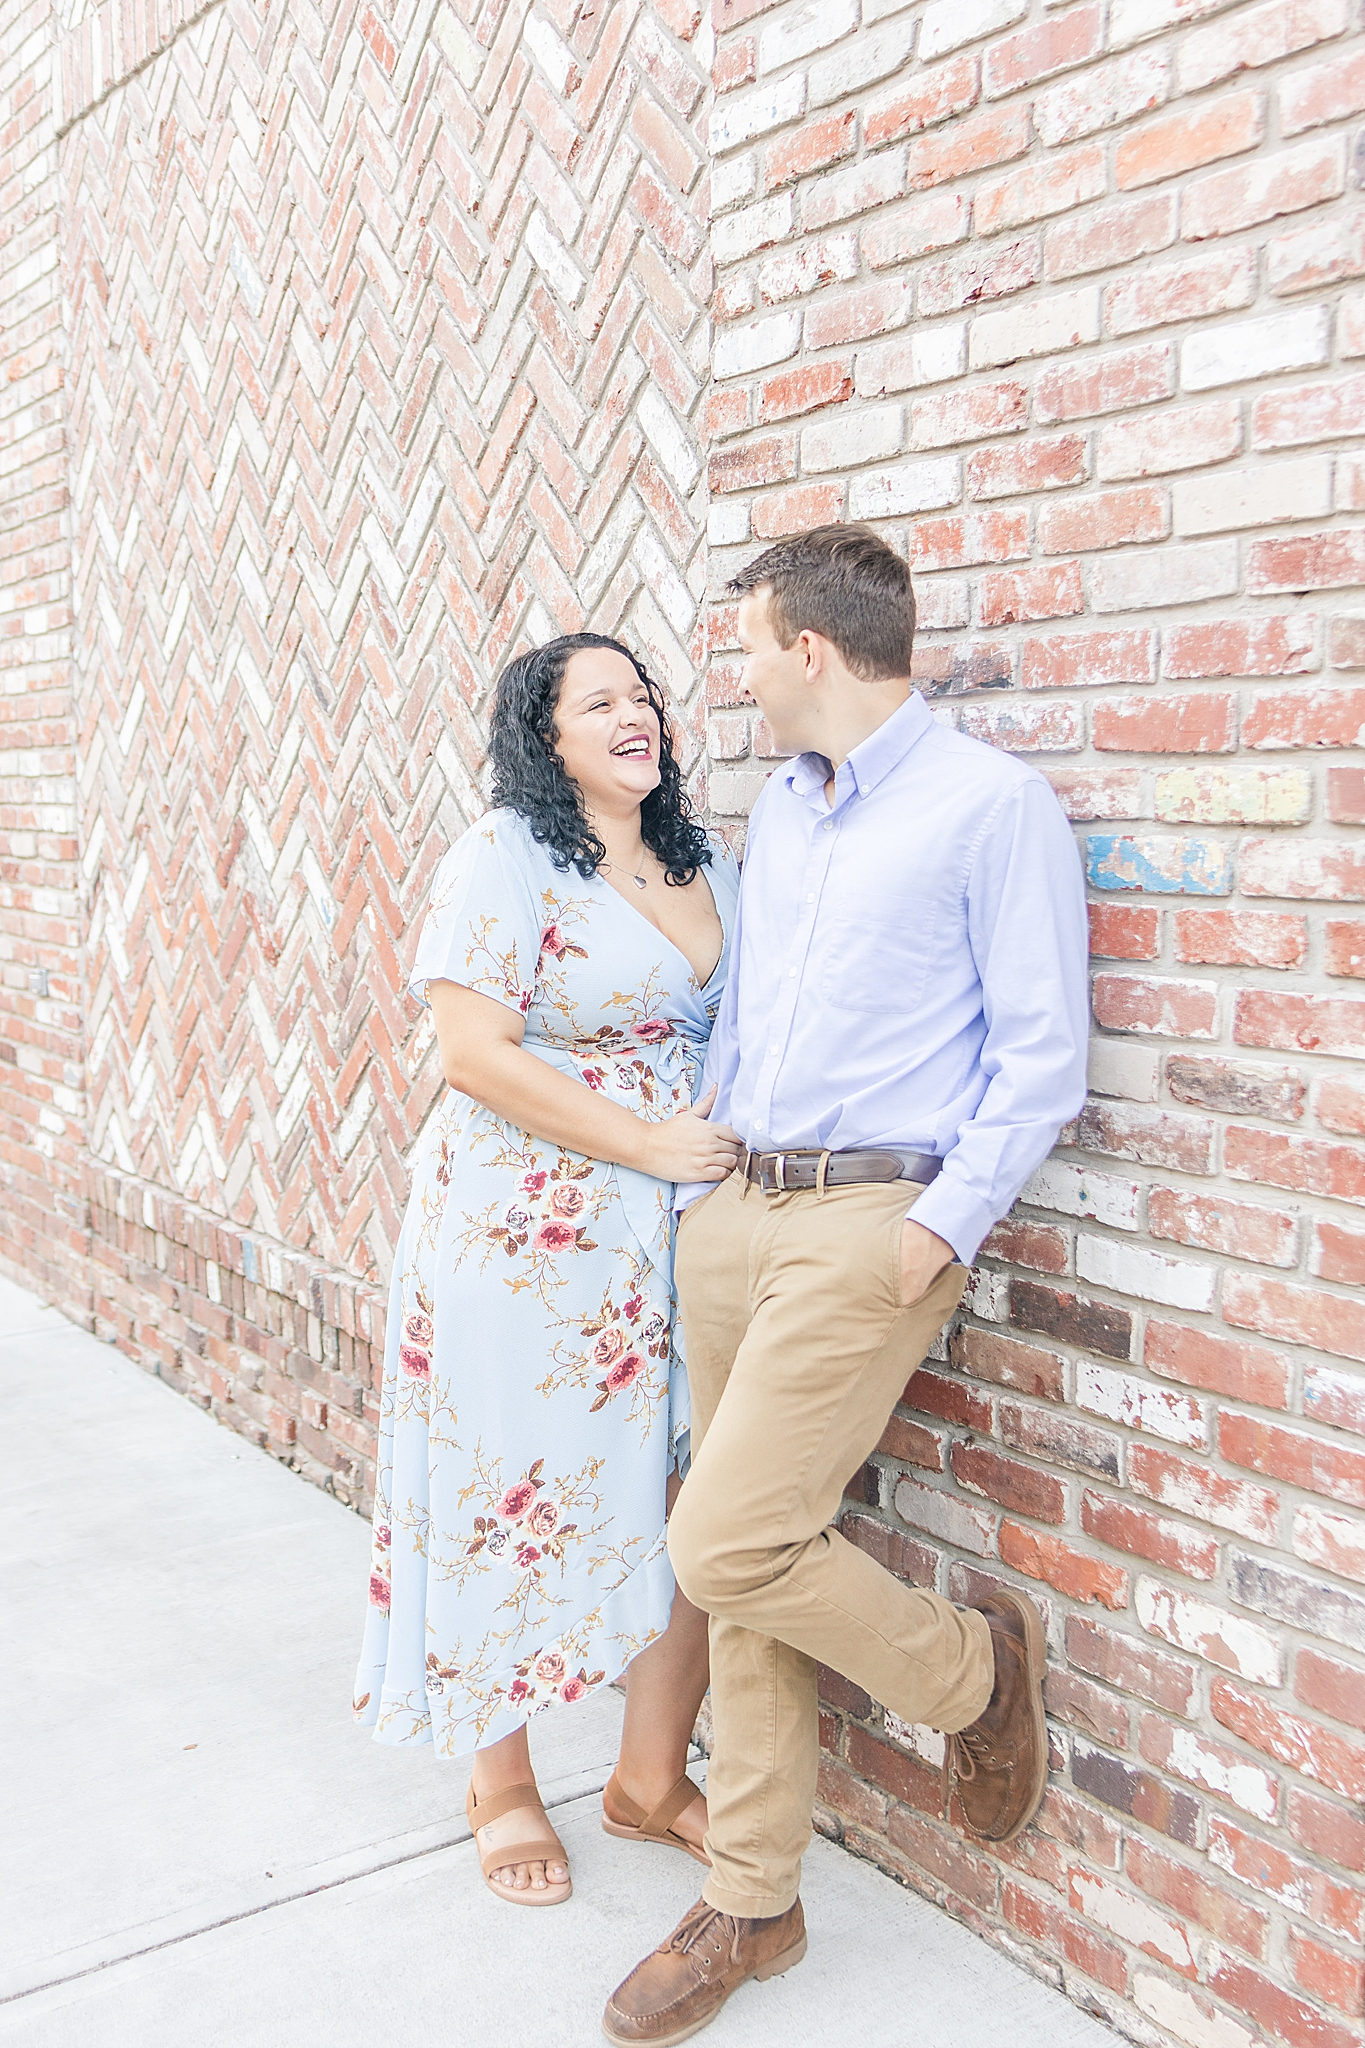 Bienville Square engagement portraits along brick wall in downtown Fairhope